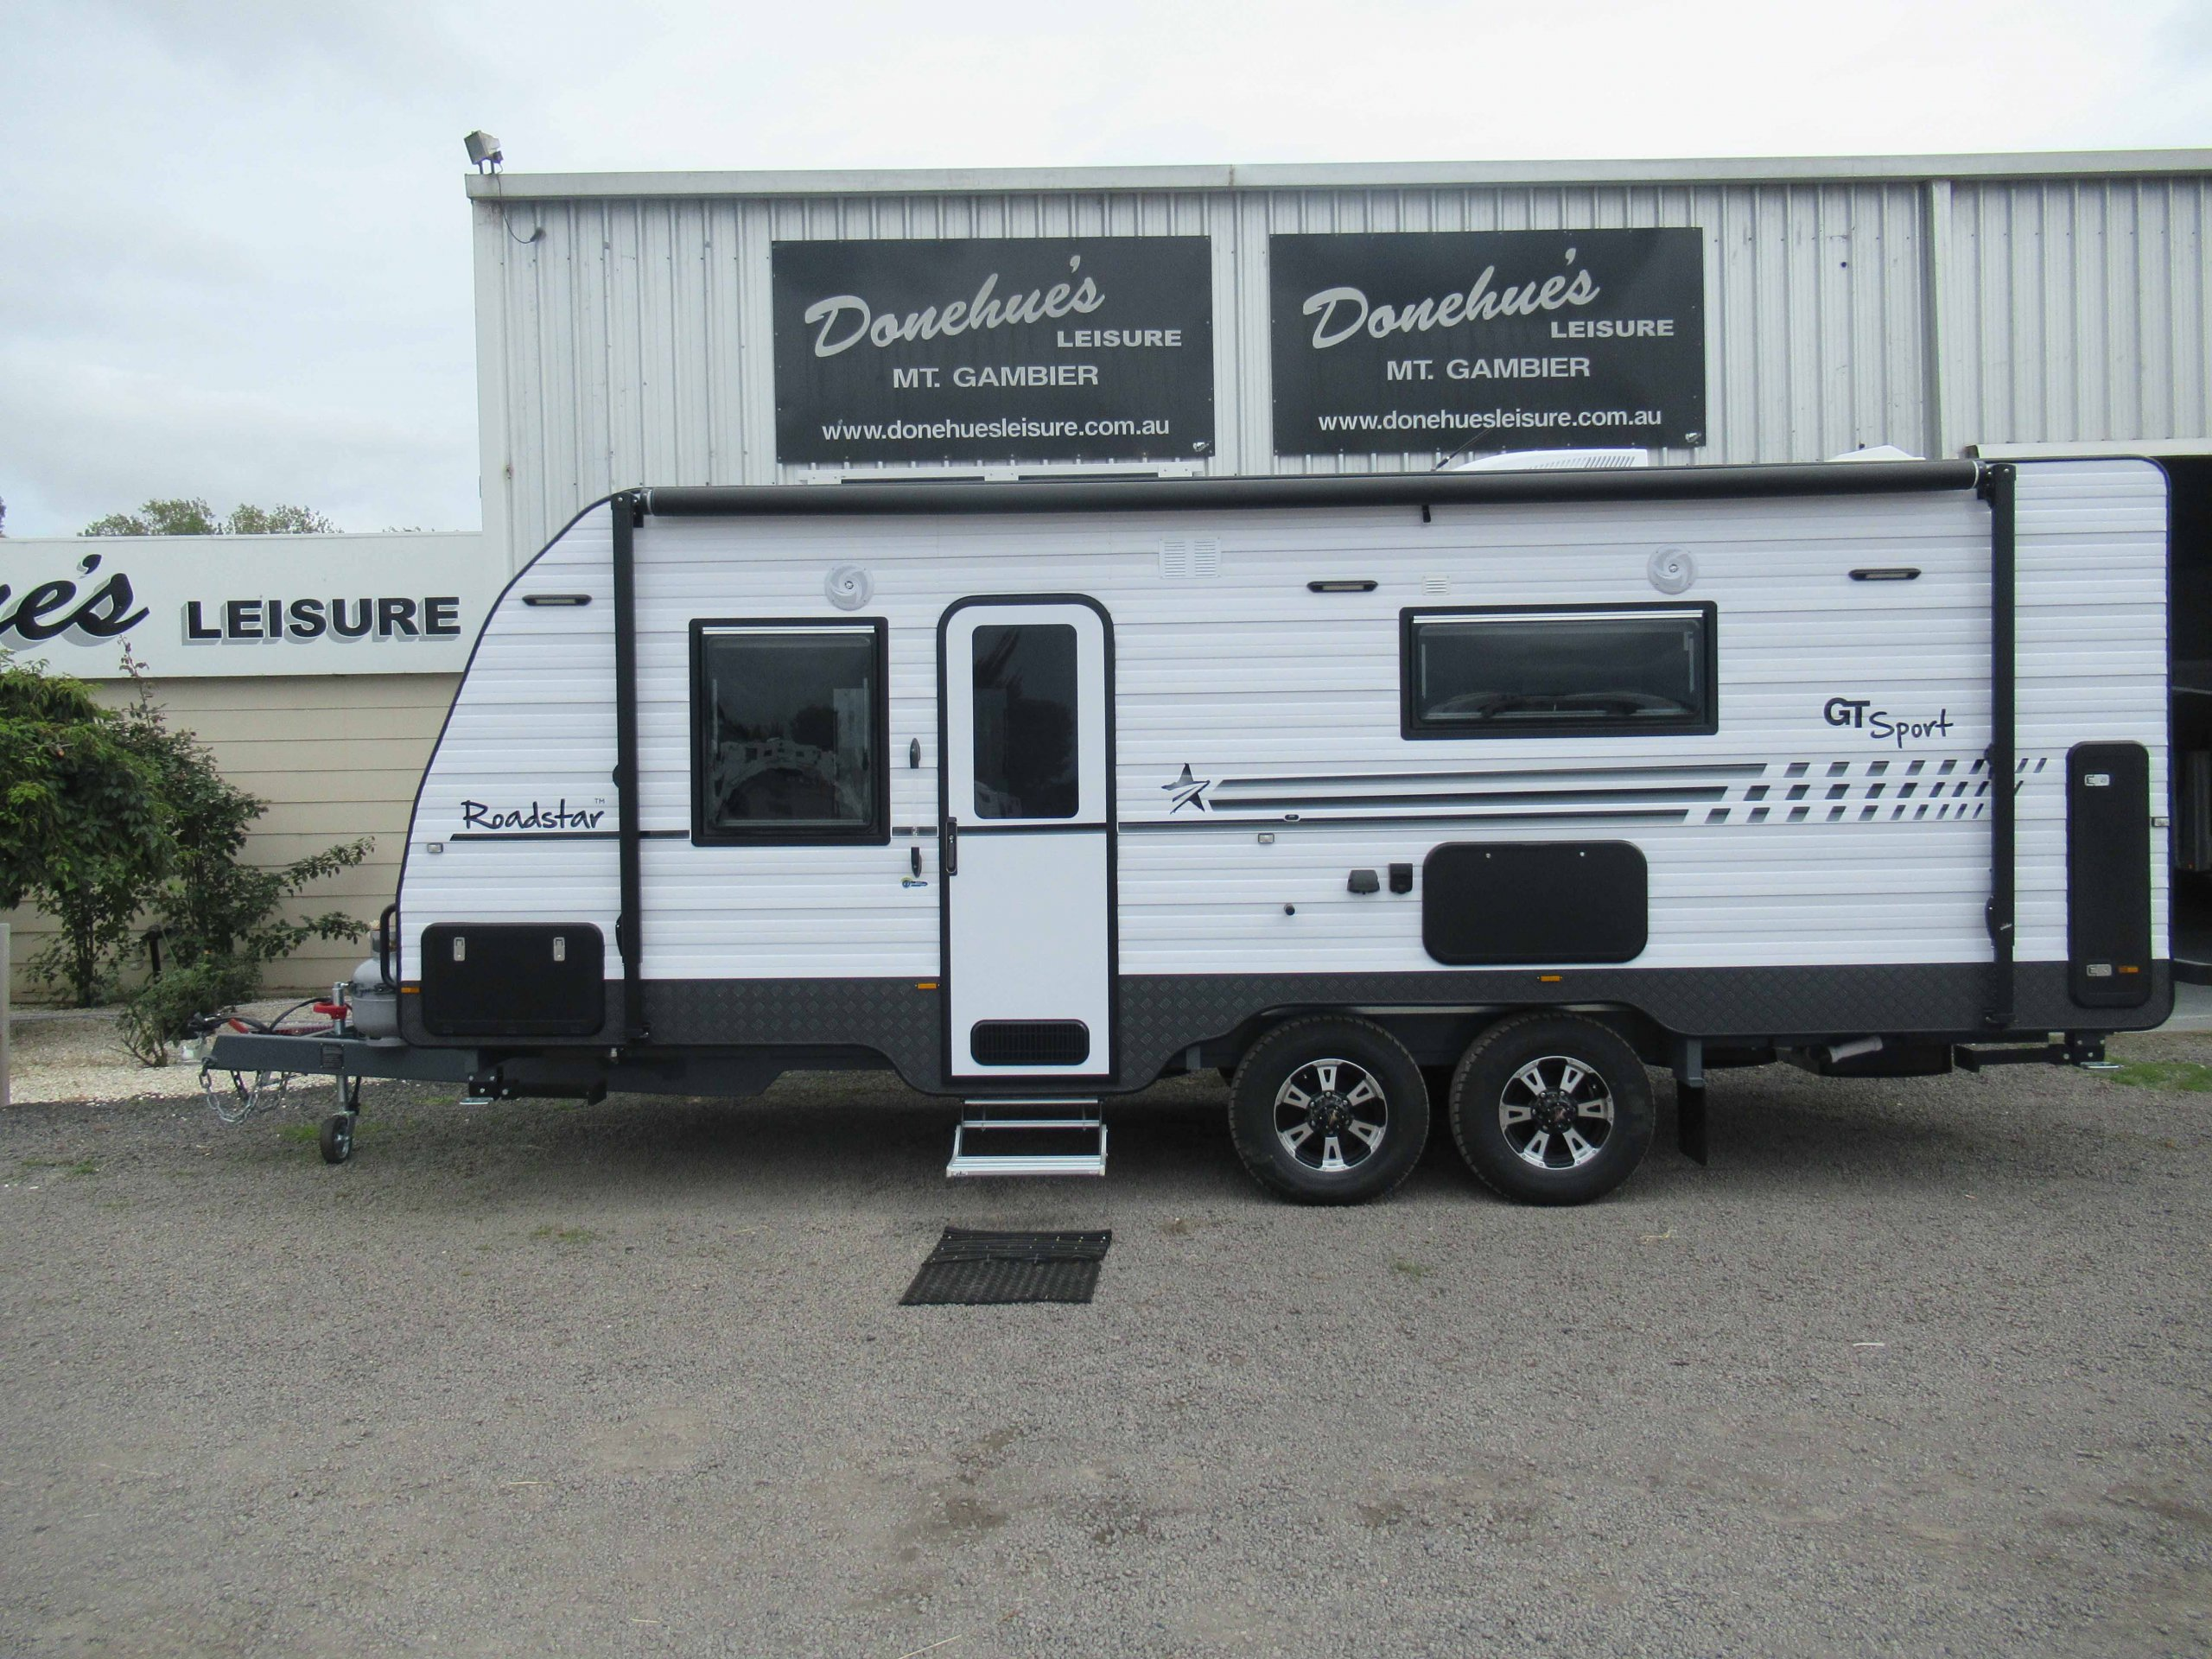 Donehues Leisure New Roadstar 206 GT Sport Caravan Mt Gambier 12443 17